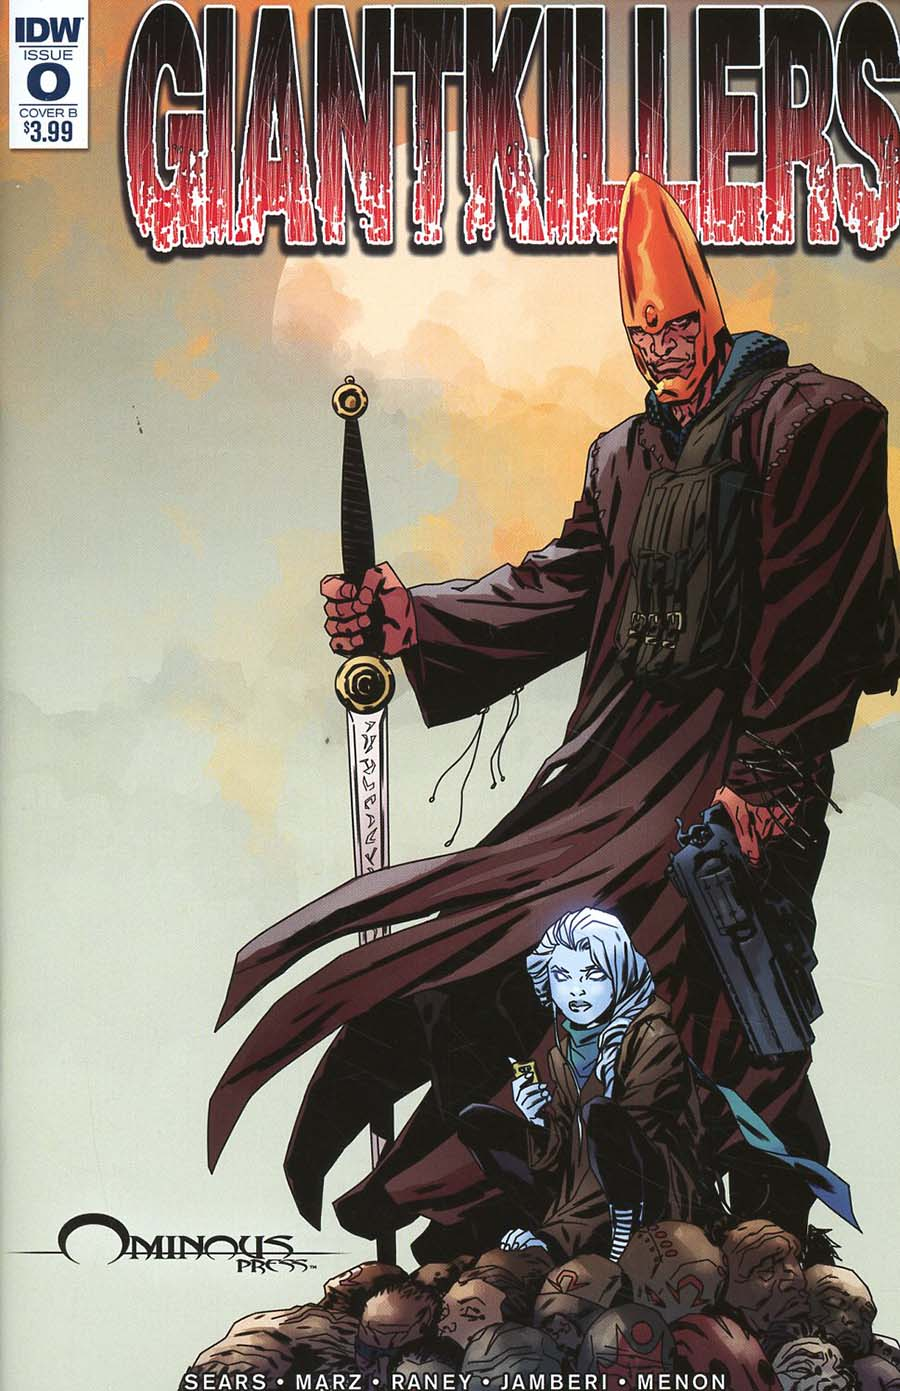 Giantkillers #0 Cover B Variant Bart Sears & Matthew Dow Smith Cover